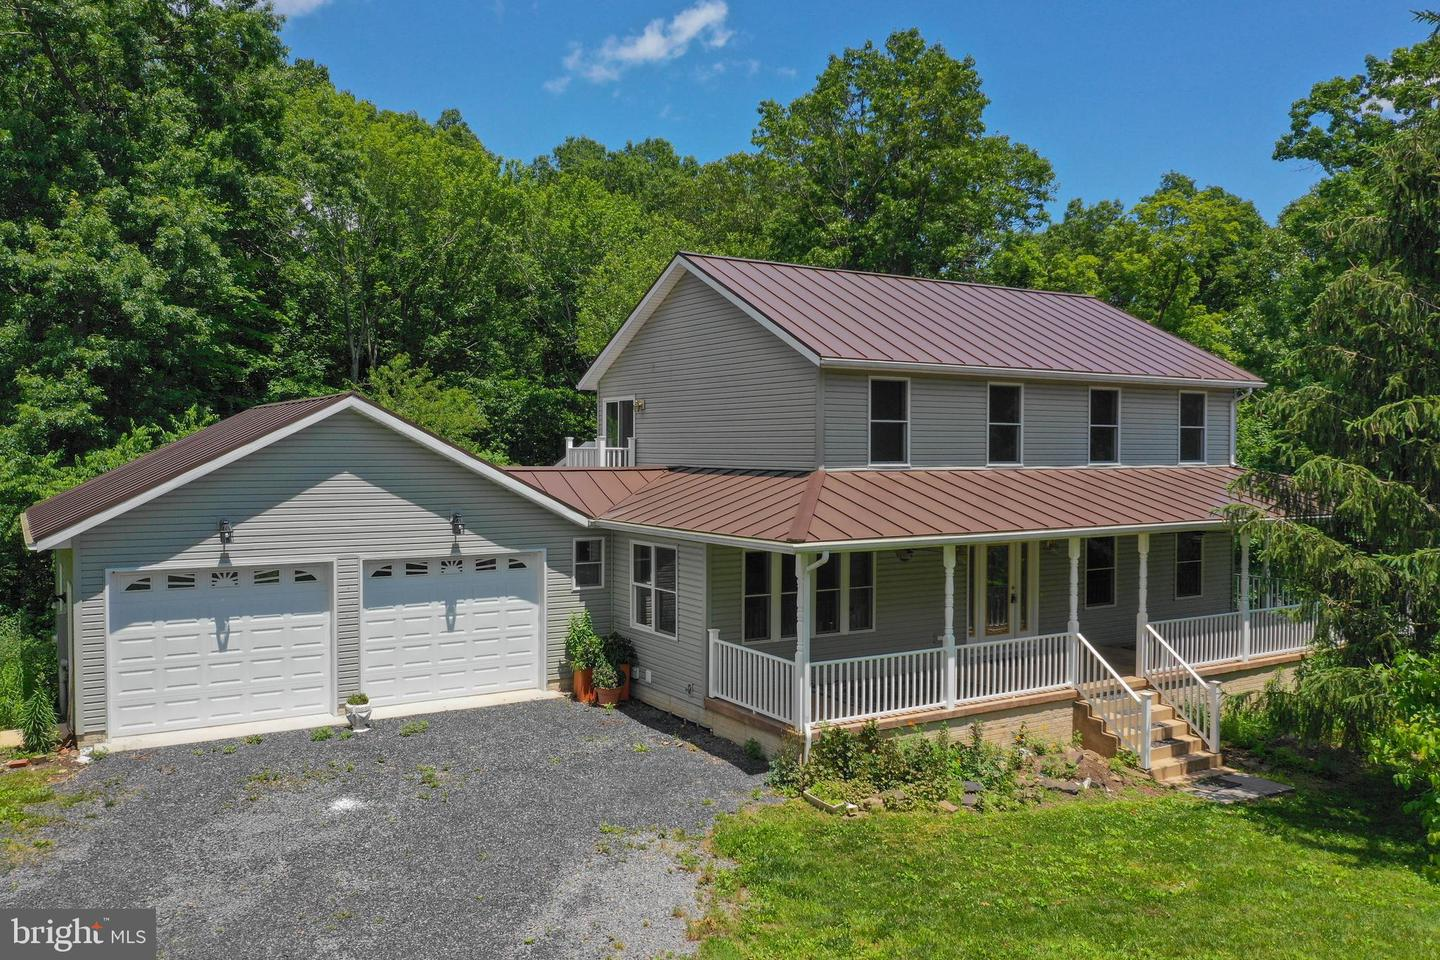 Single Family for Sale at 7779 Critton Owl Hollow Rd Slanesville, West Virginia 25444 United States